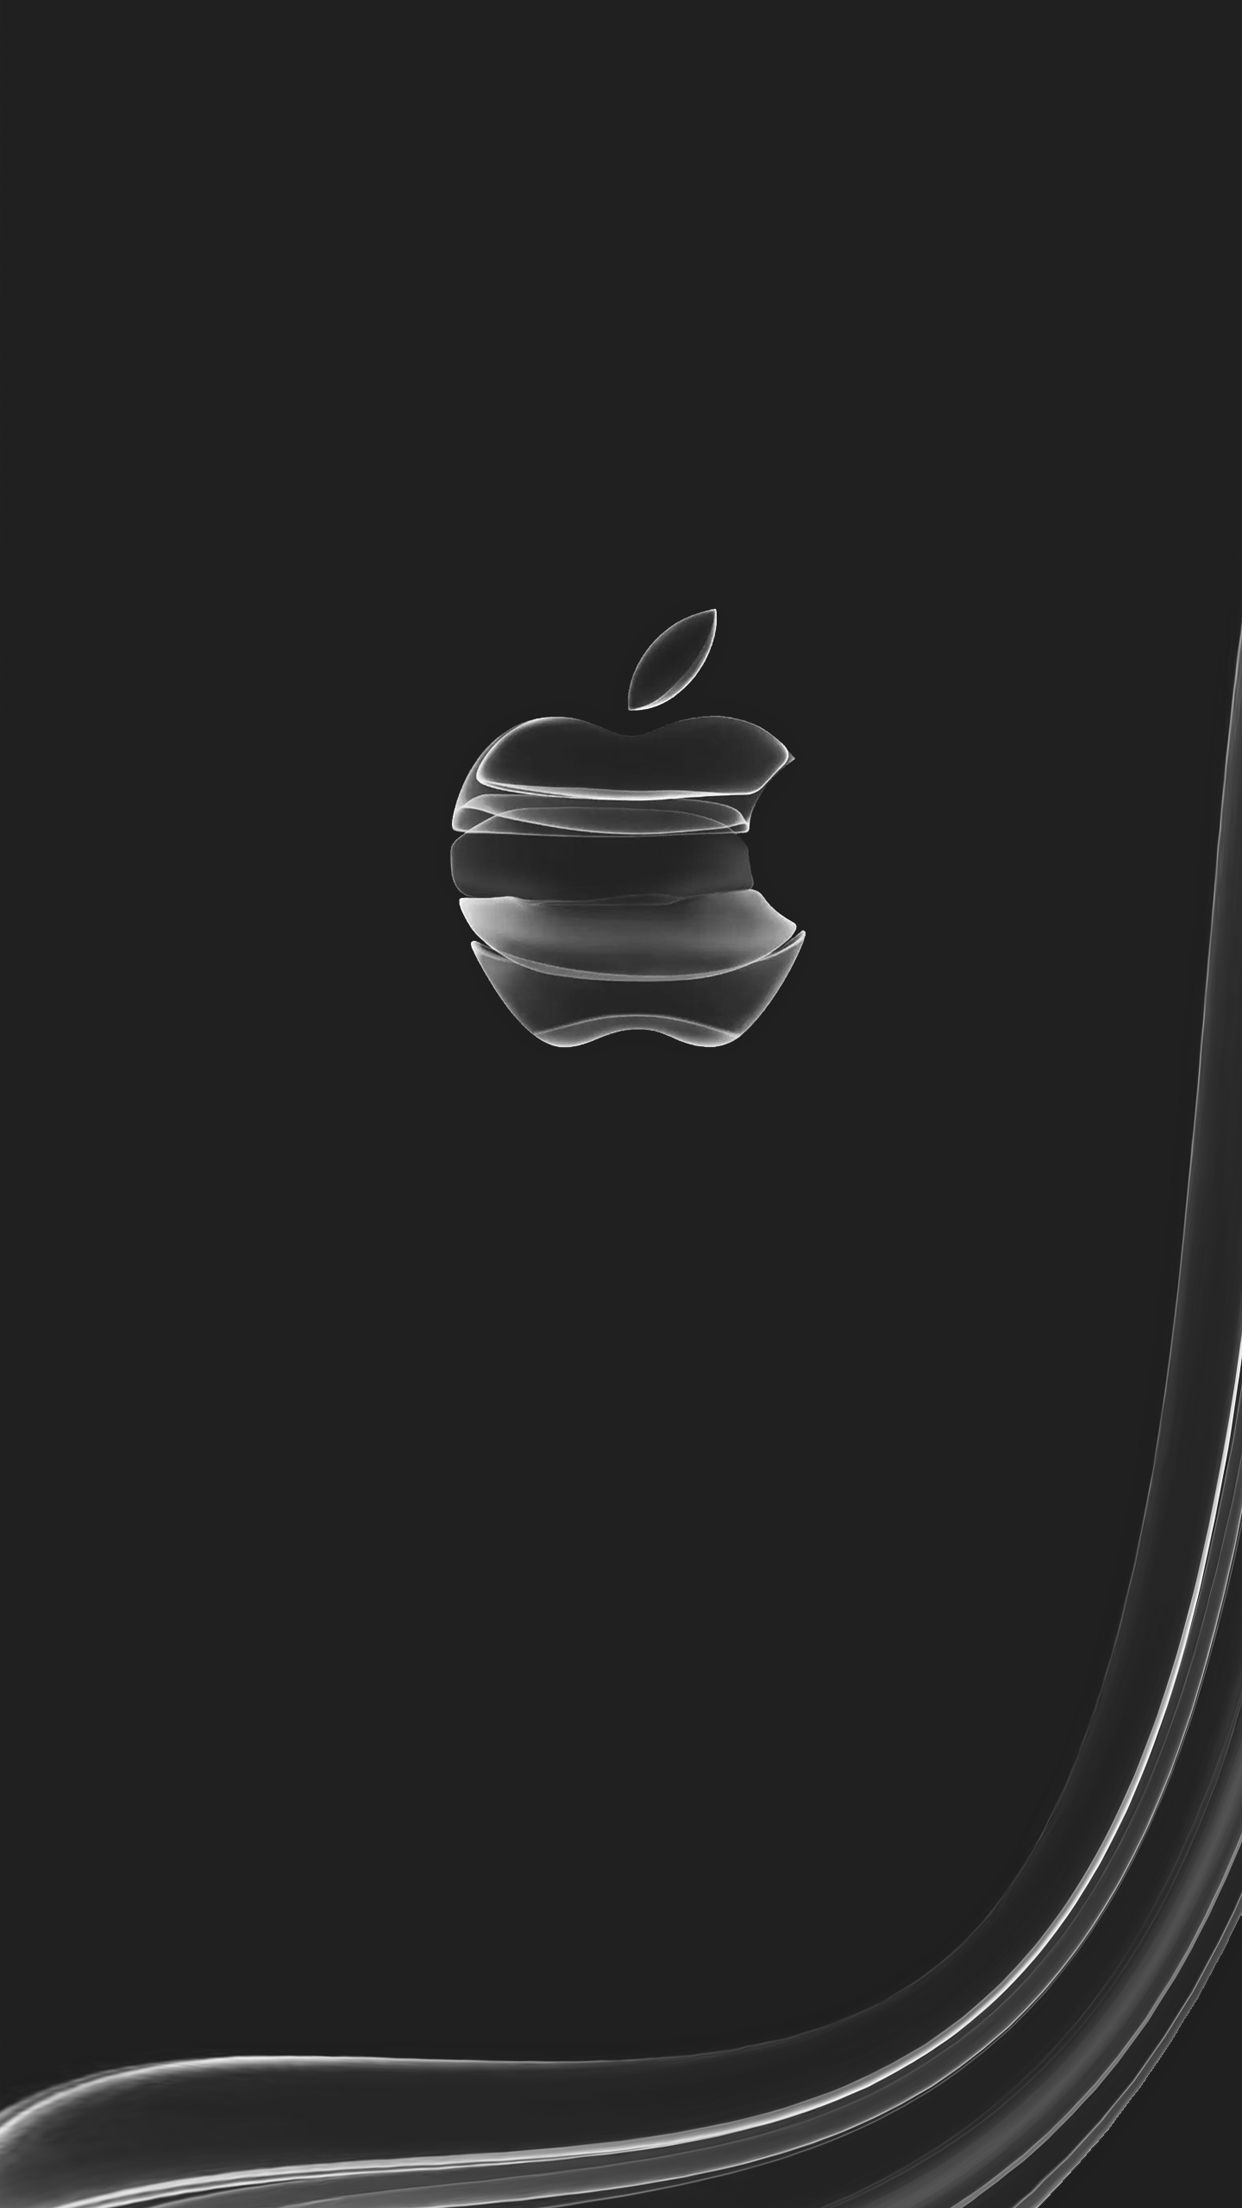 Apple Event Wallpapers For Iphone Ipad Apple Logo Wallpaper